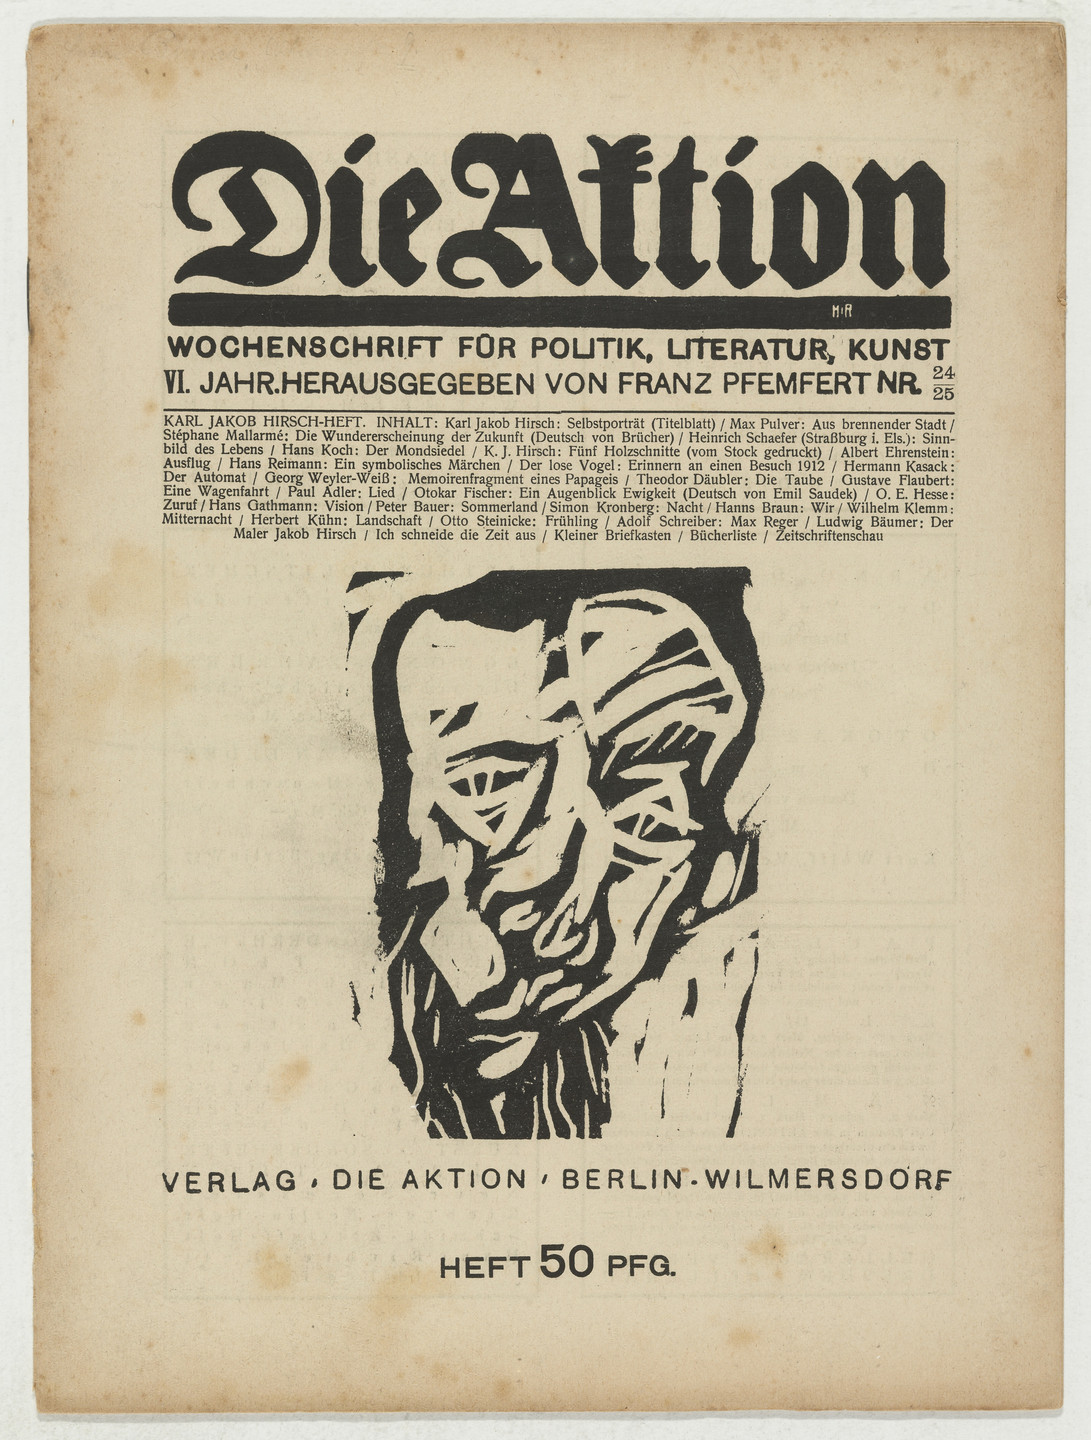 Karl Jacob Hirsch. Die Aktion, vol. 6, no. 24/25. June 17, 1916